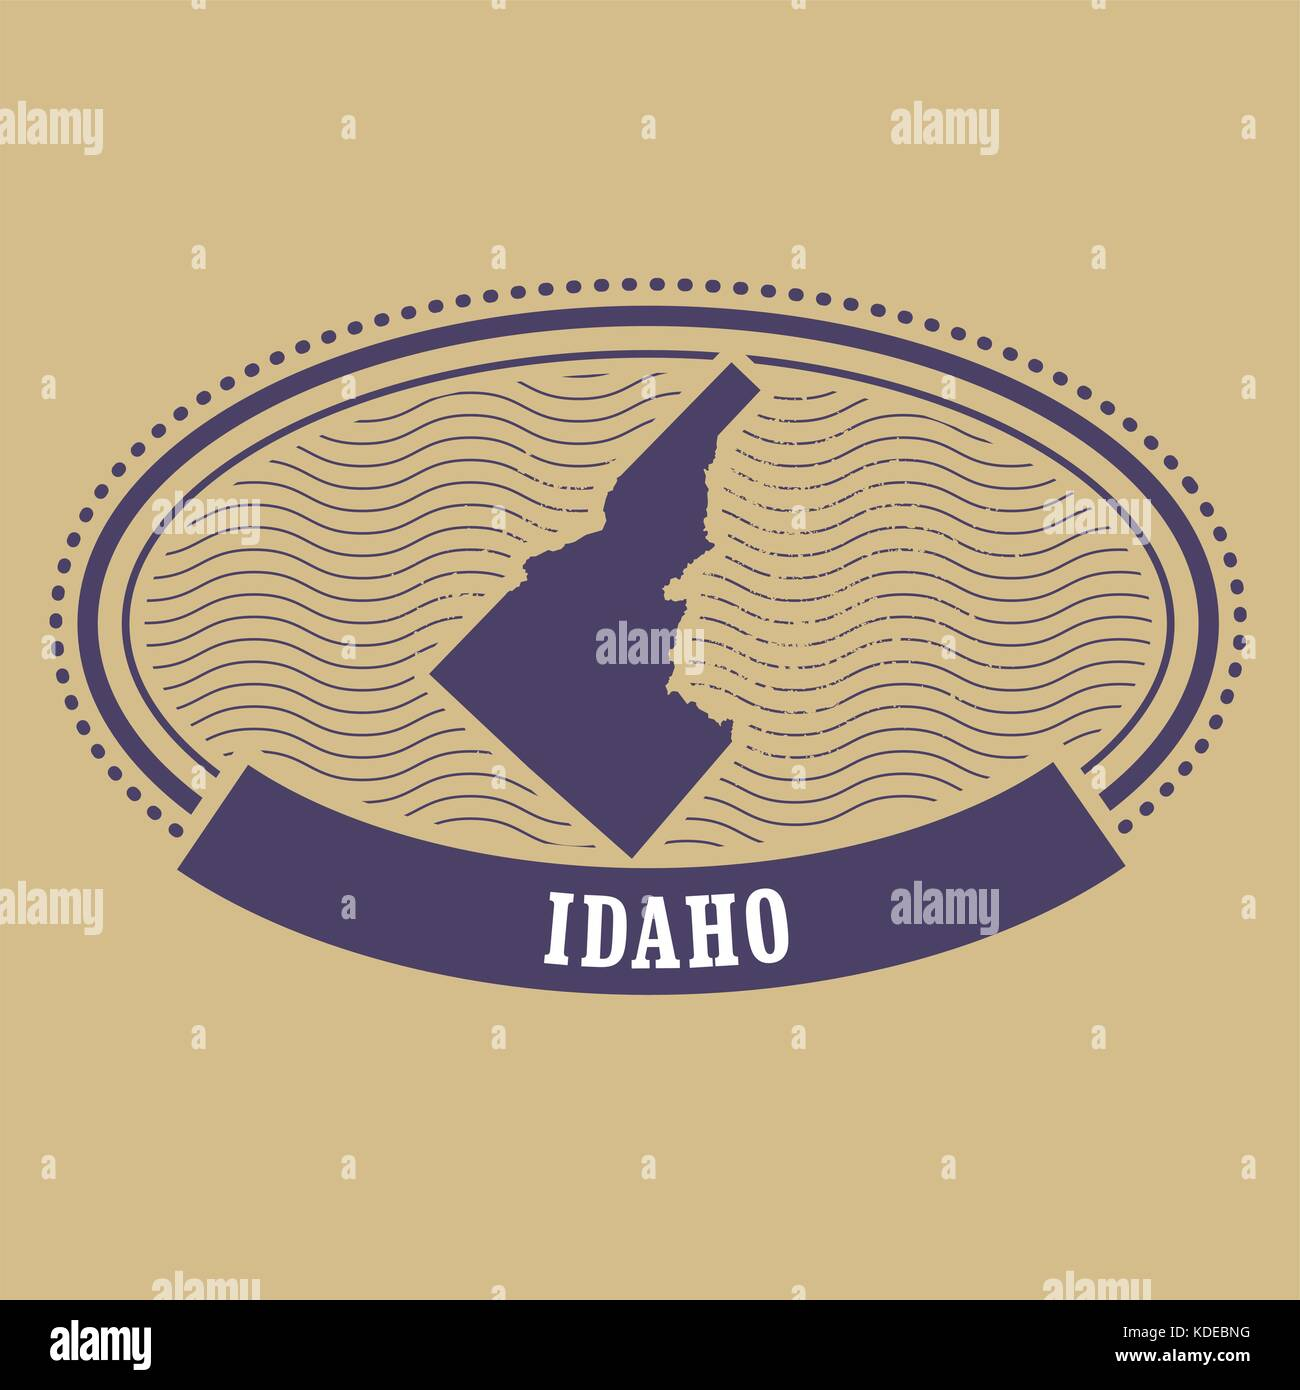 Idaho map silhouette - oval stamp of state - Stock Vector